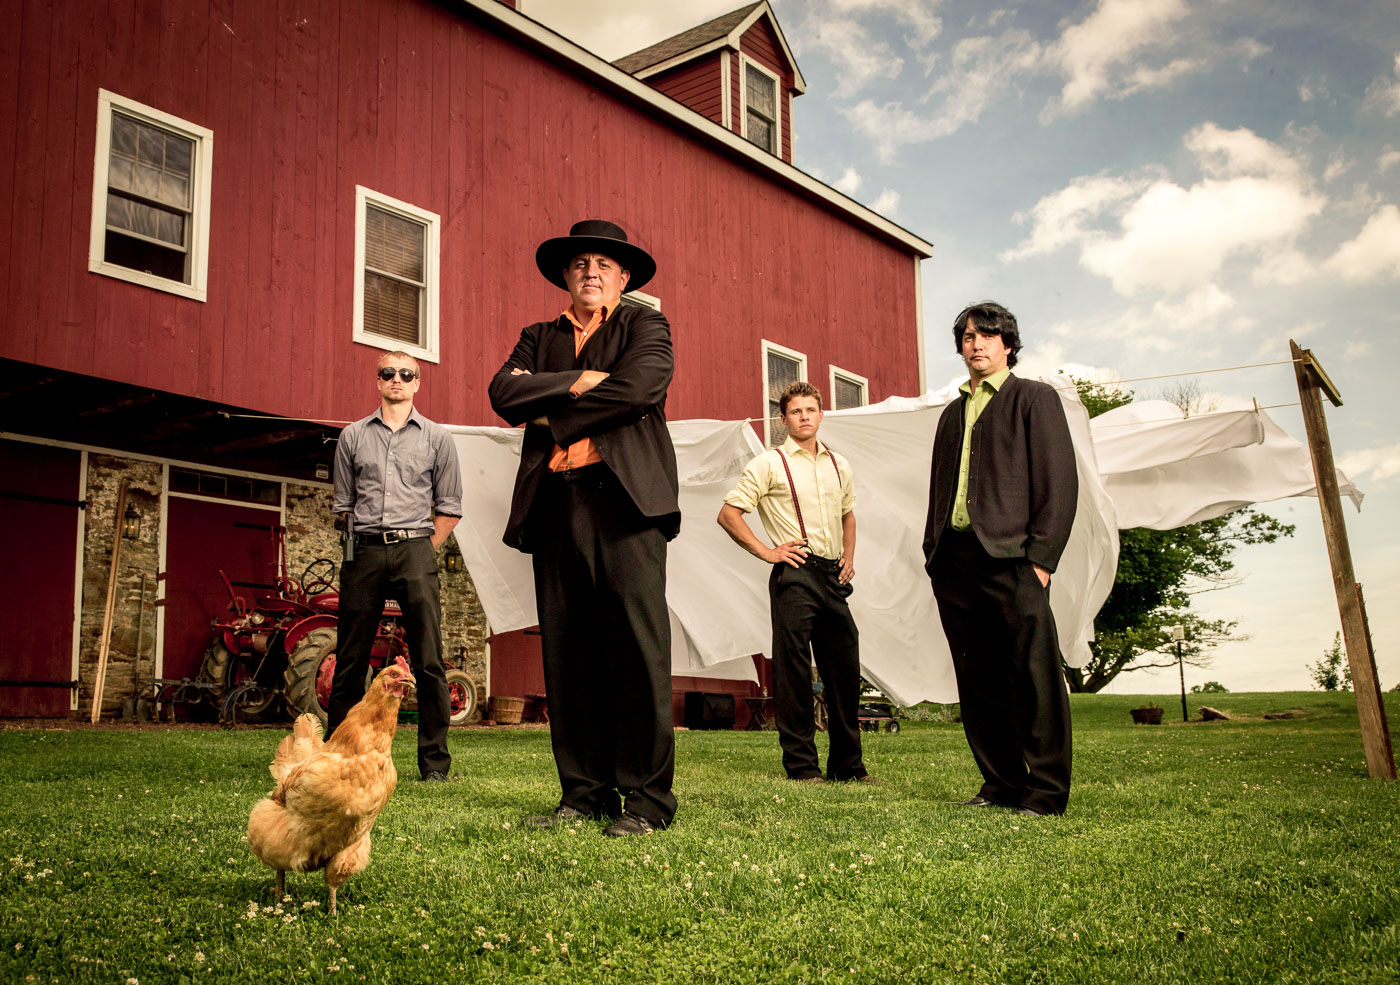 Amish Mafia - Discovery Channel